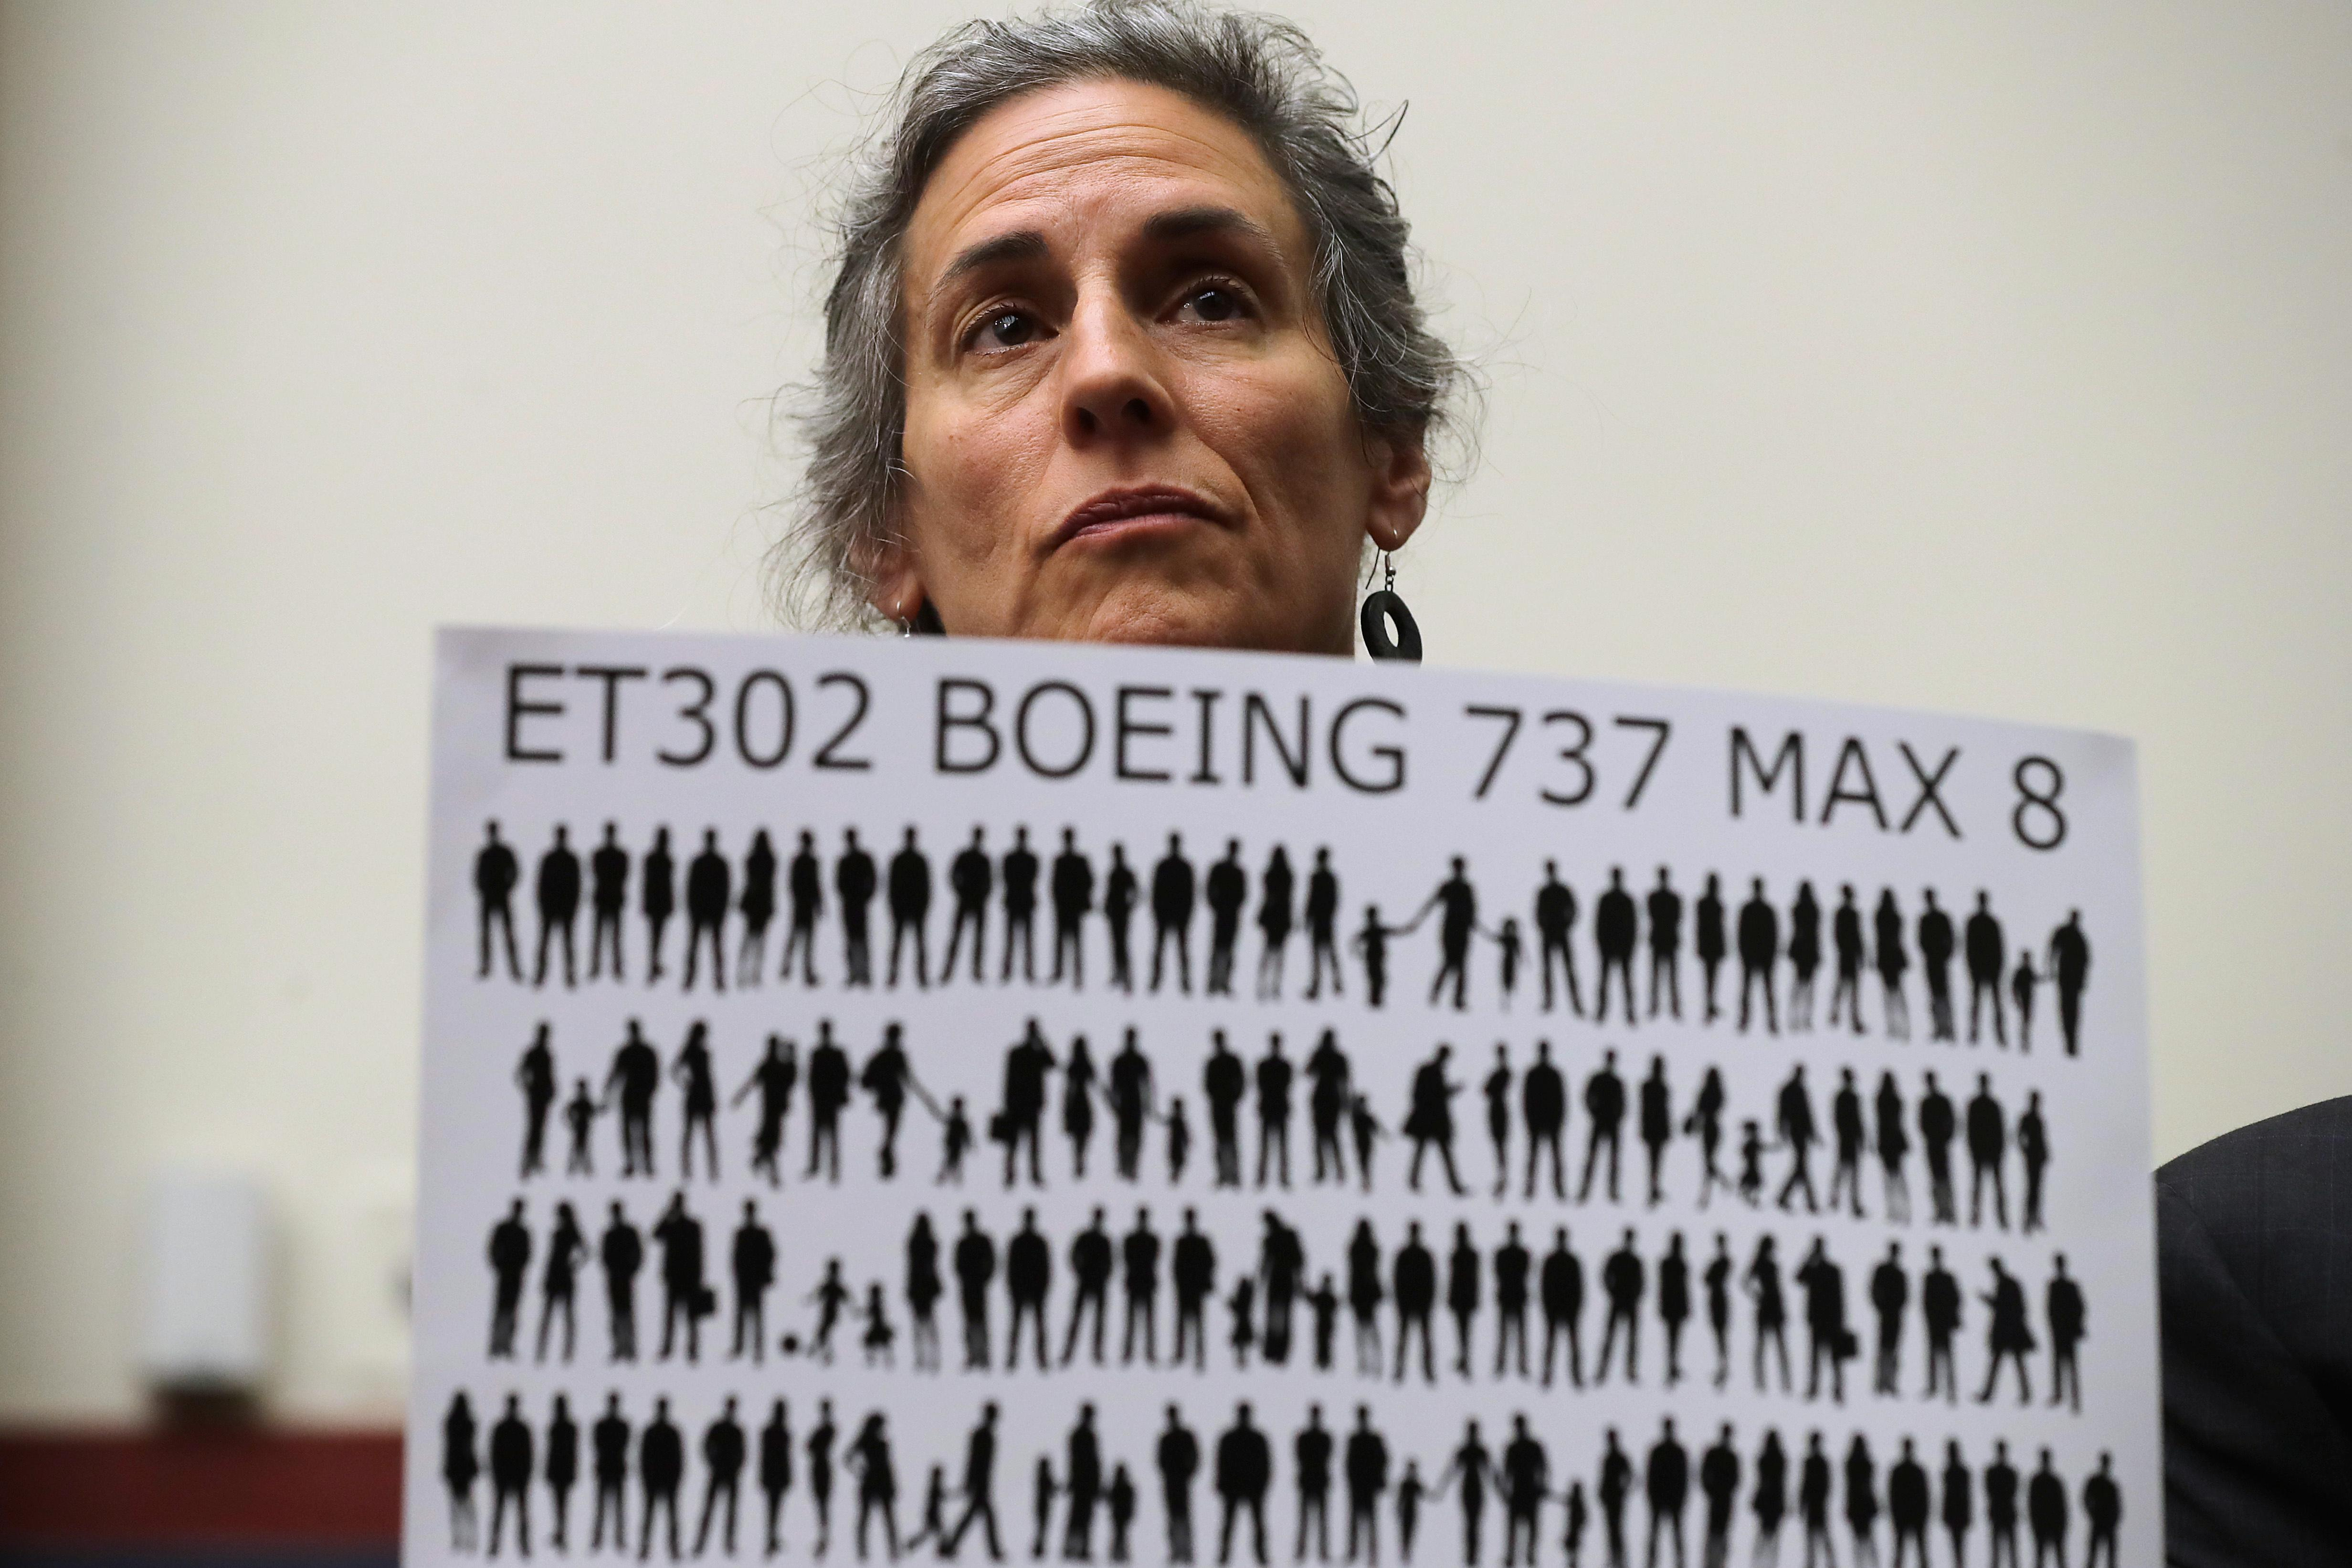 Profit over safety? Boeing under fire over 737 Max crashes as families demand answers